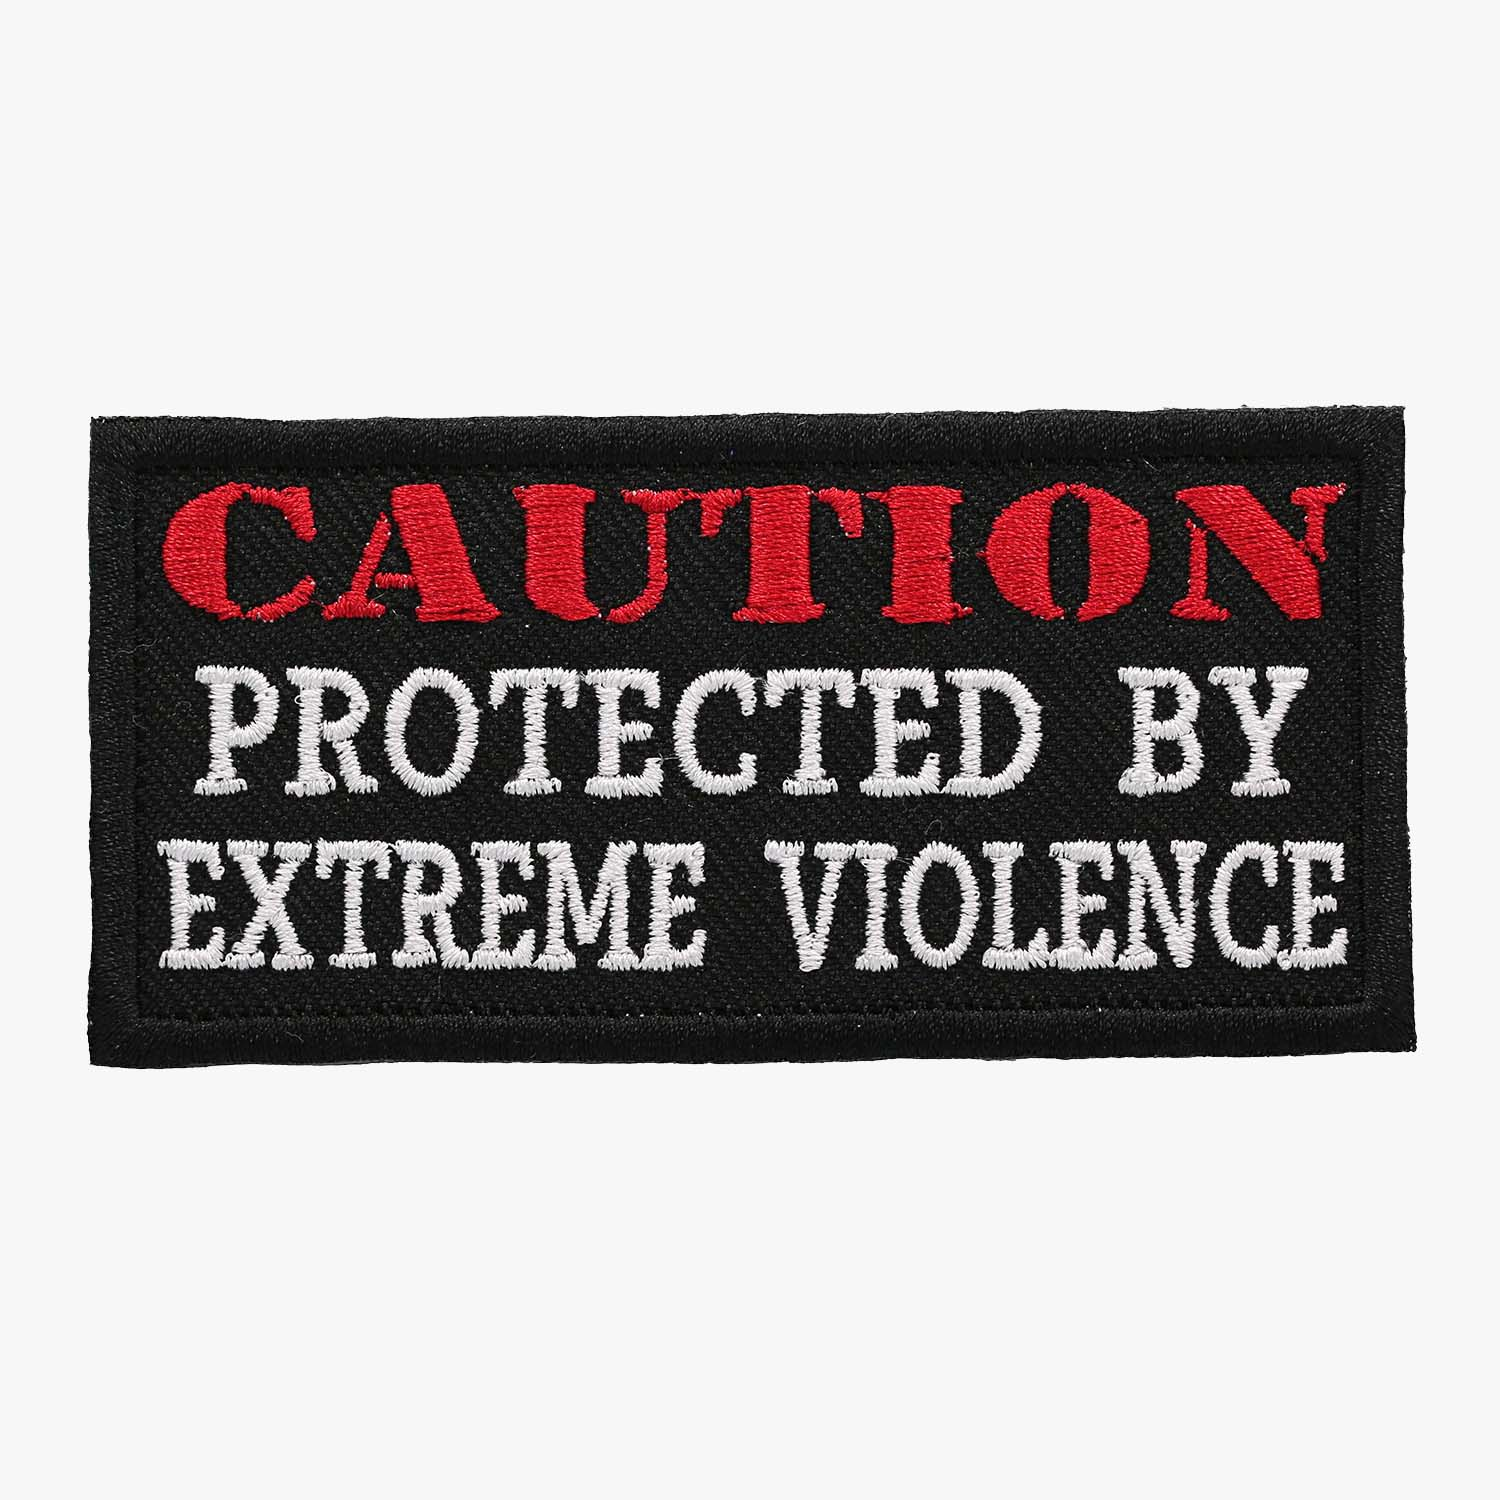 CAUTION PROTECTED BY EXTREME VIOLENCE Embroidered Patch